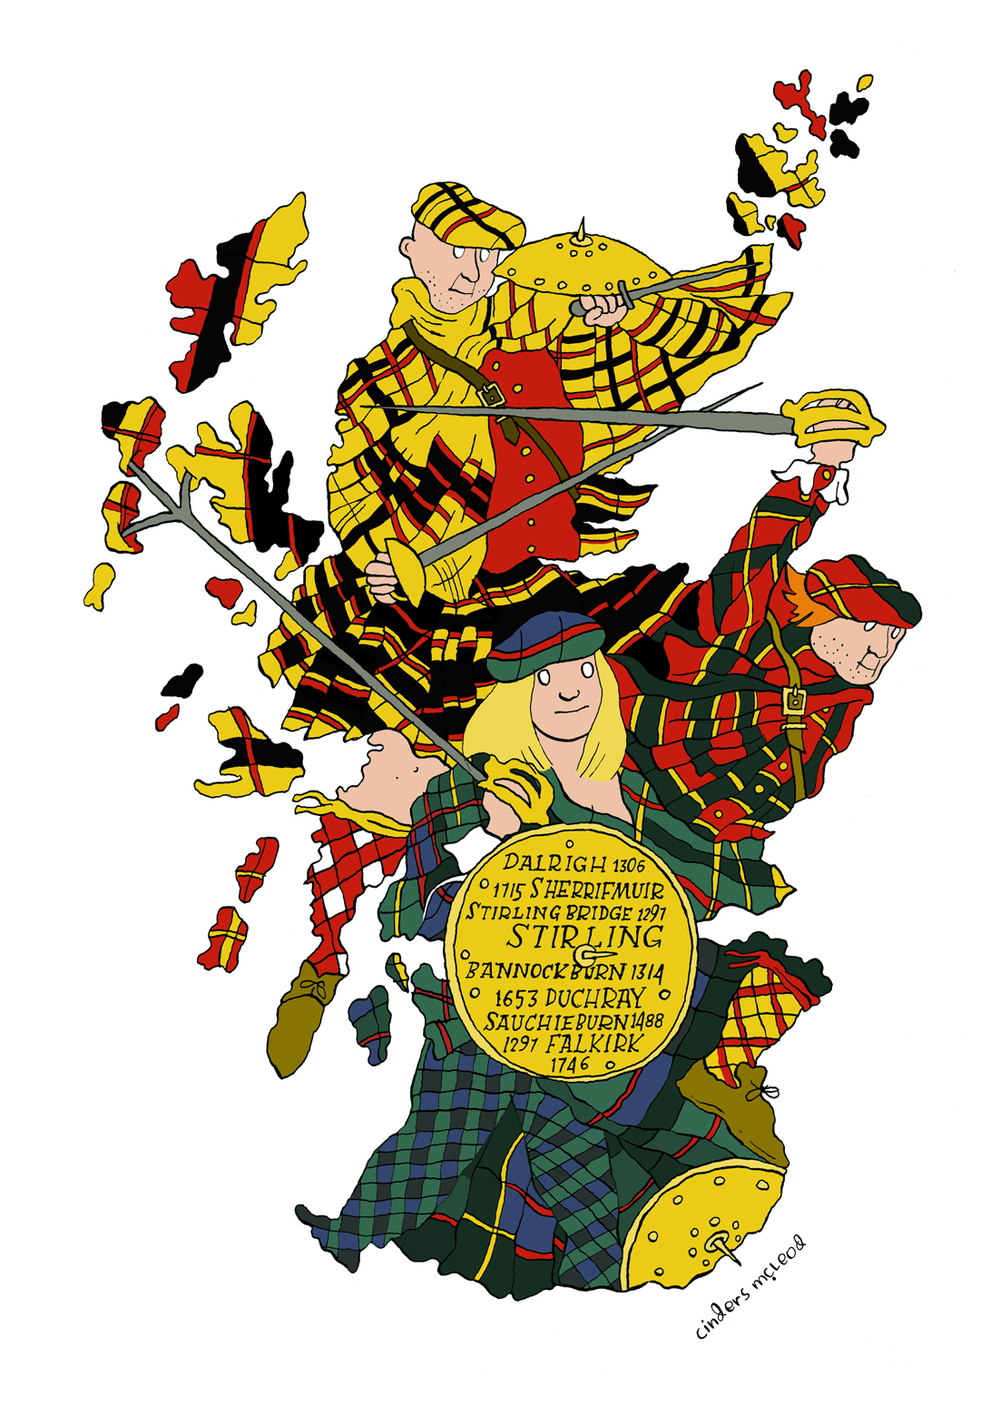 Map of Scotland  Leiper Gallery, Glasgow